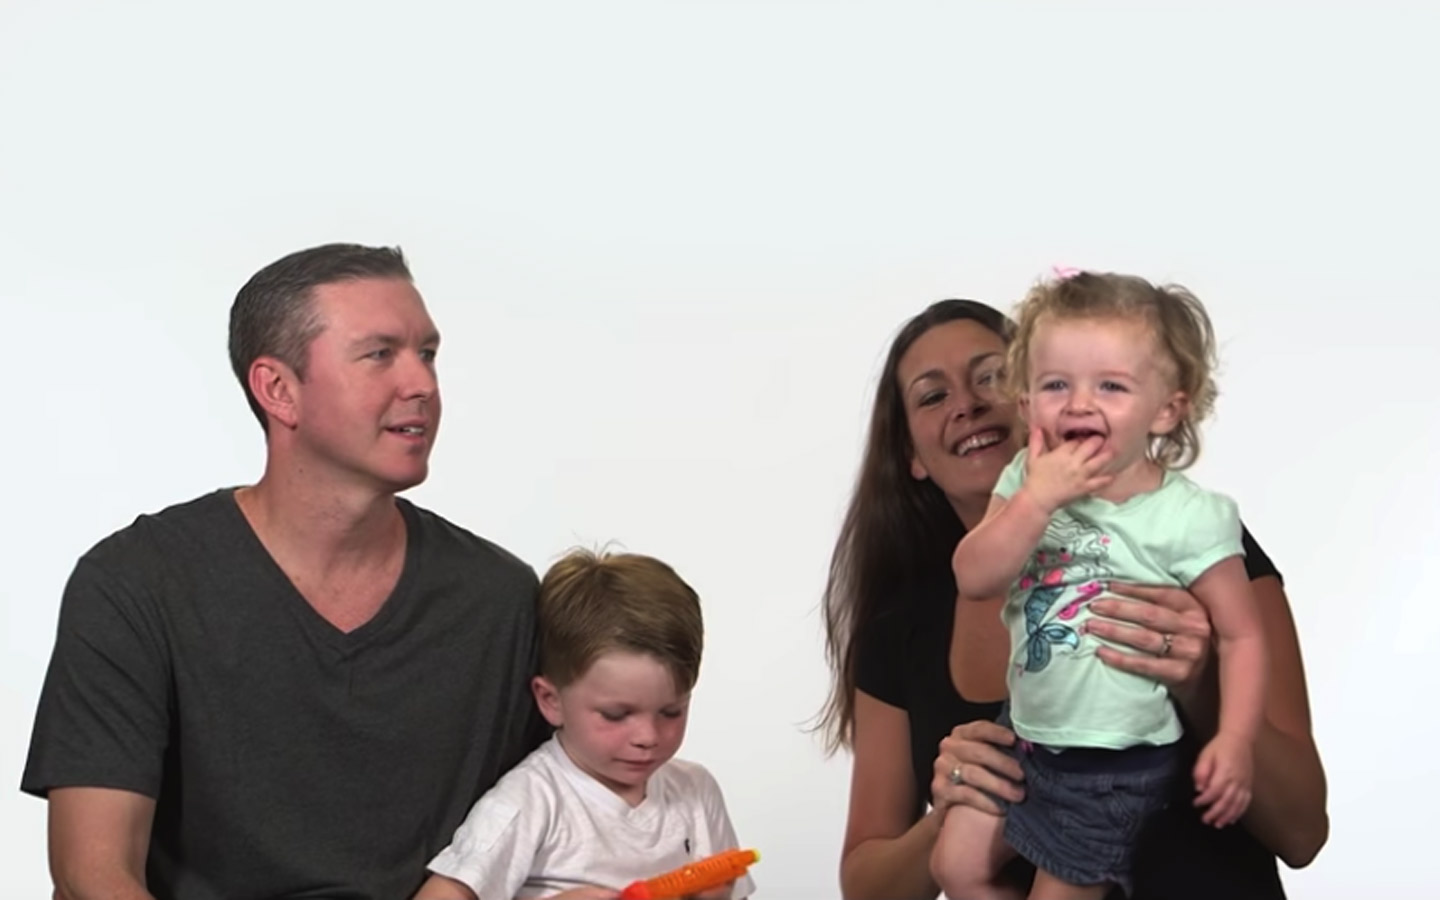 Cochlear recipient Nora and her family